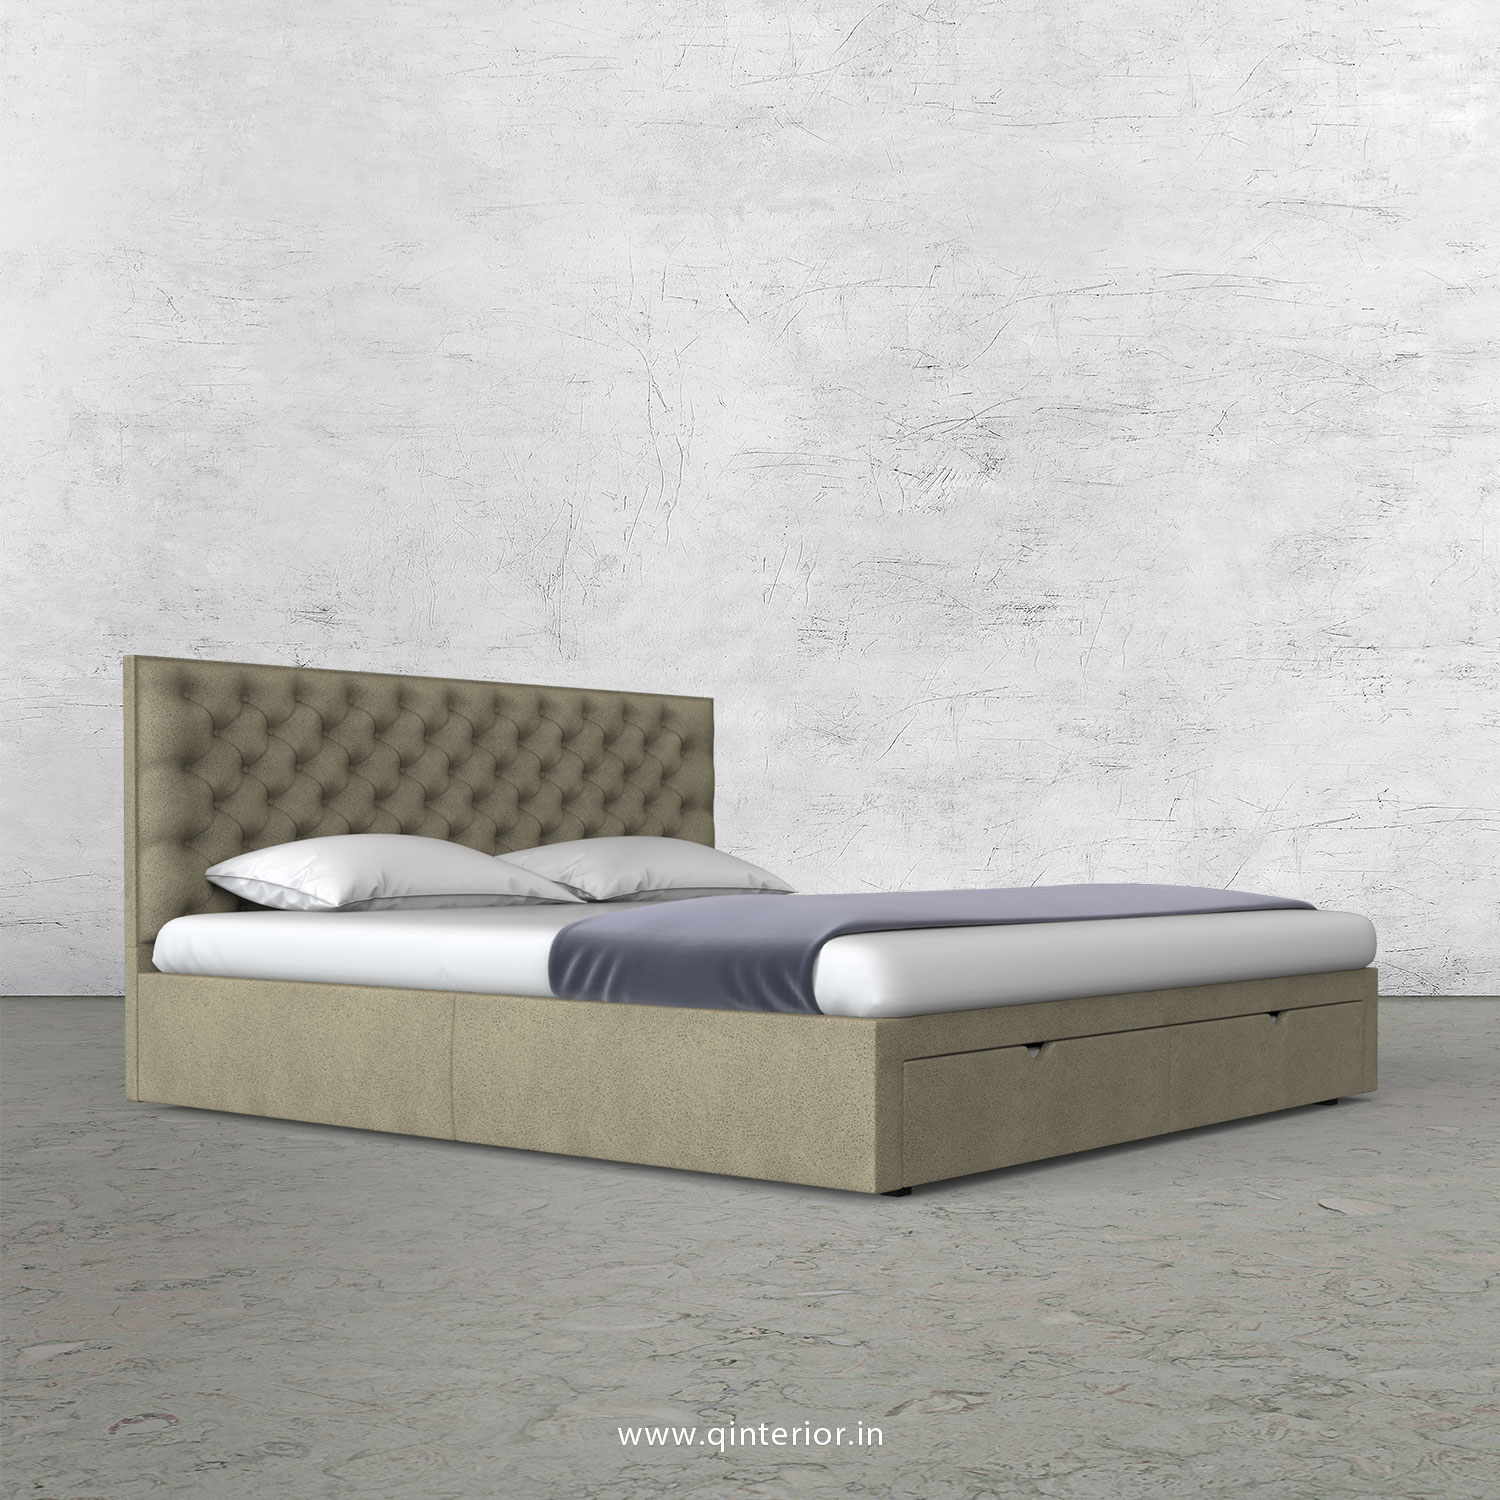 Orion Queen Storage Bed in Fab Leather Fabric - QBD001 FL10